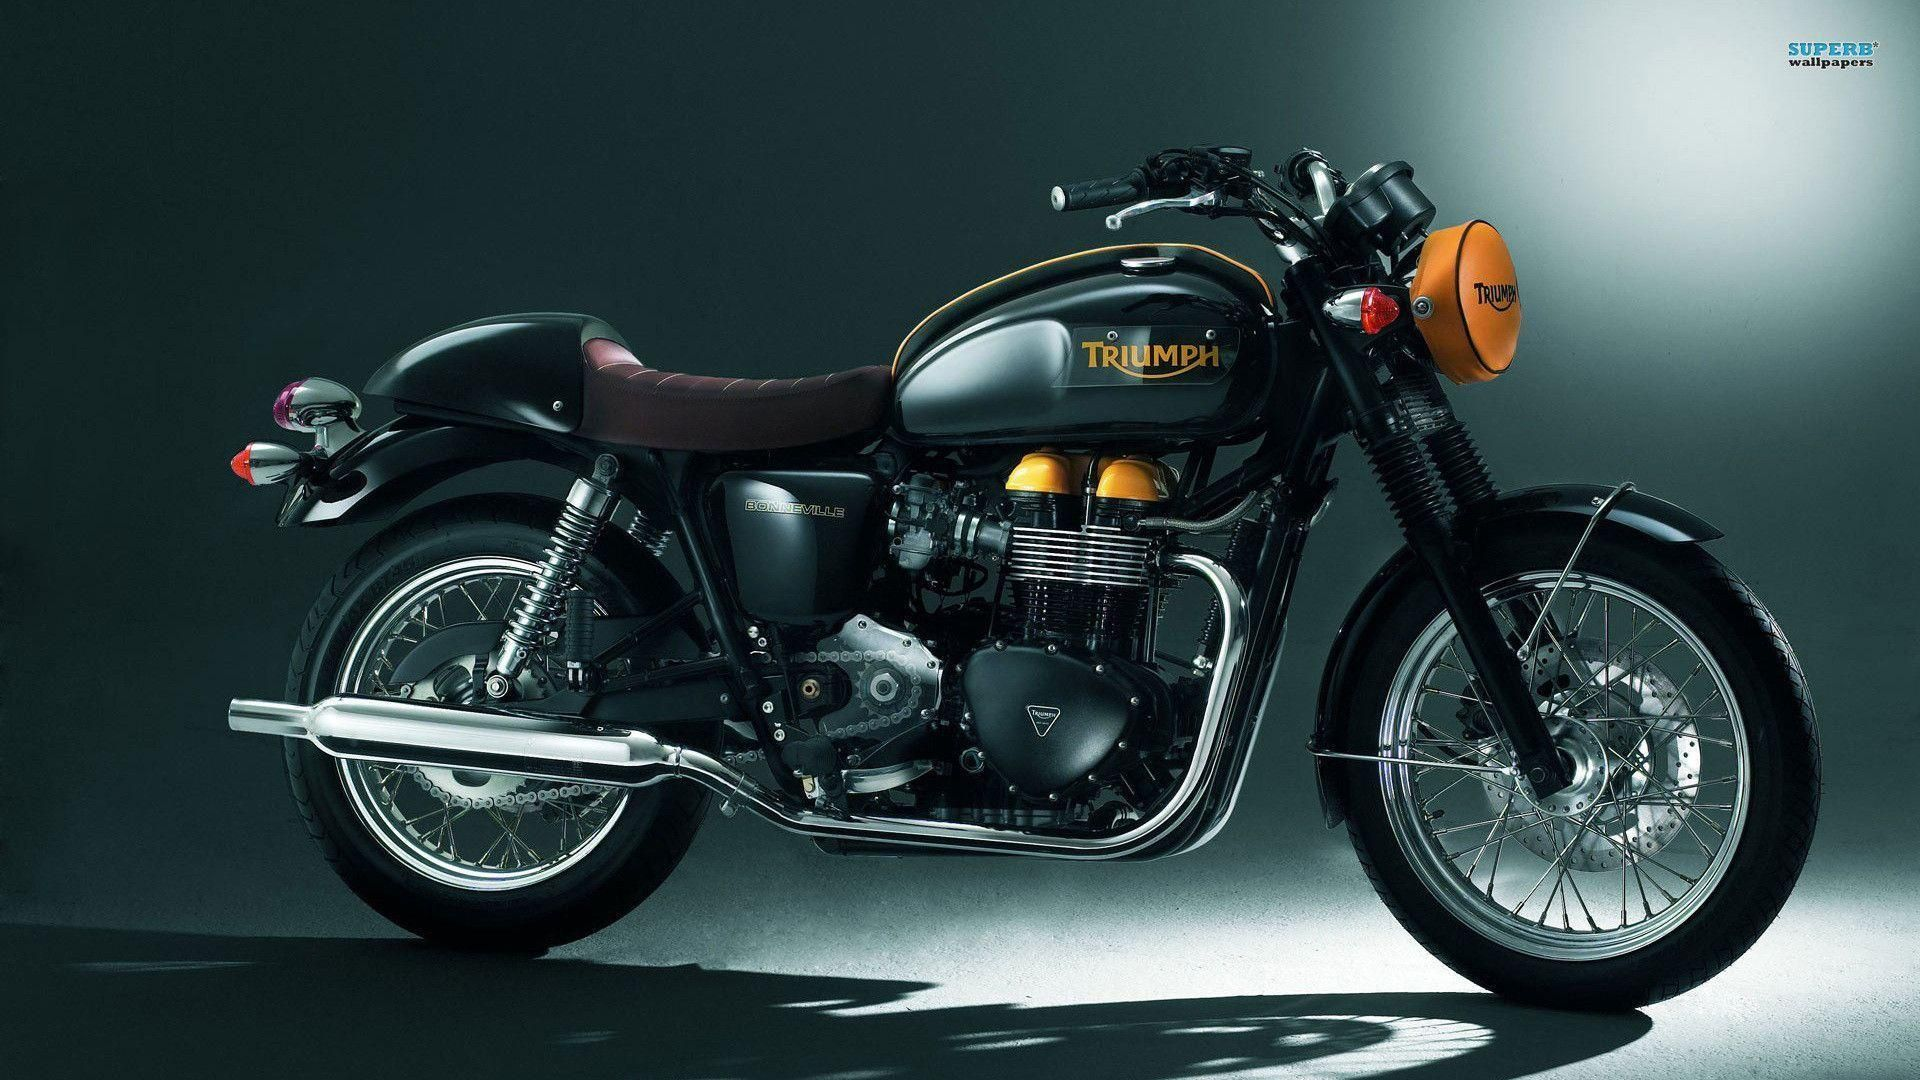 First Gallery Post By Virender In 2020 With Images Triumph Motorcycles Triumph Bonneville Motorcycle Wallpaper